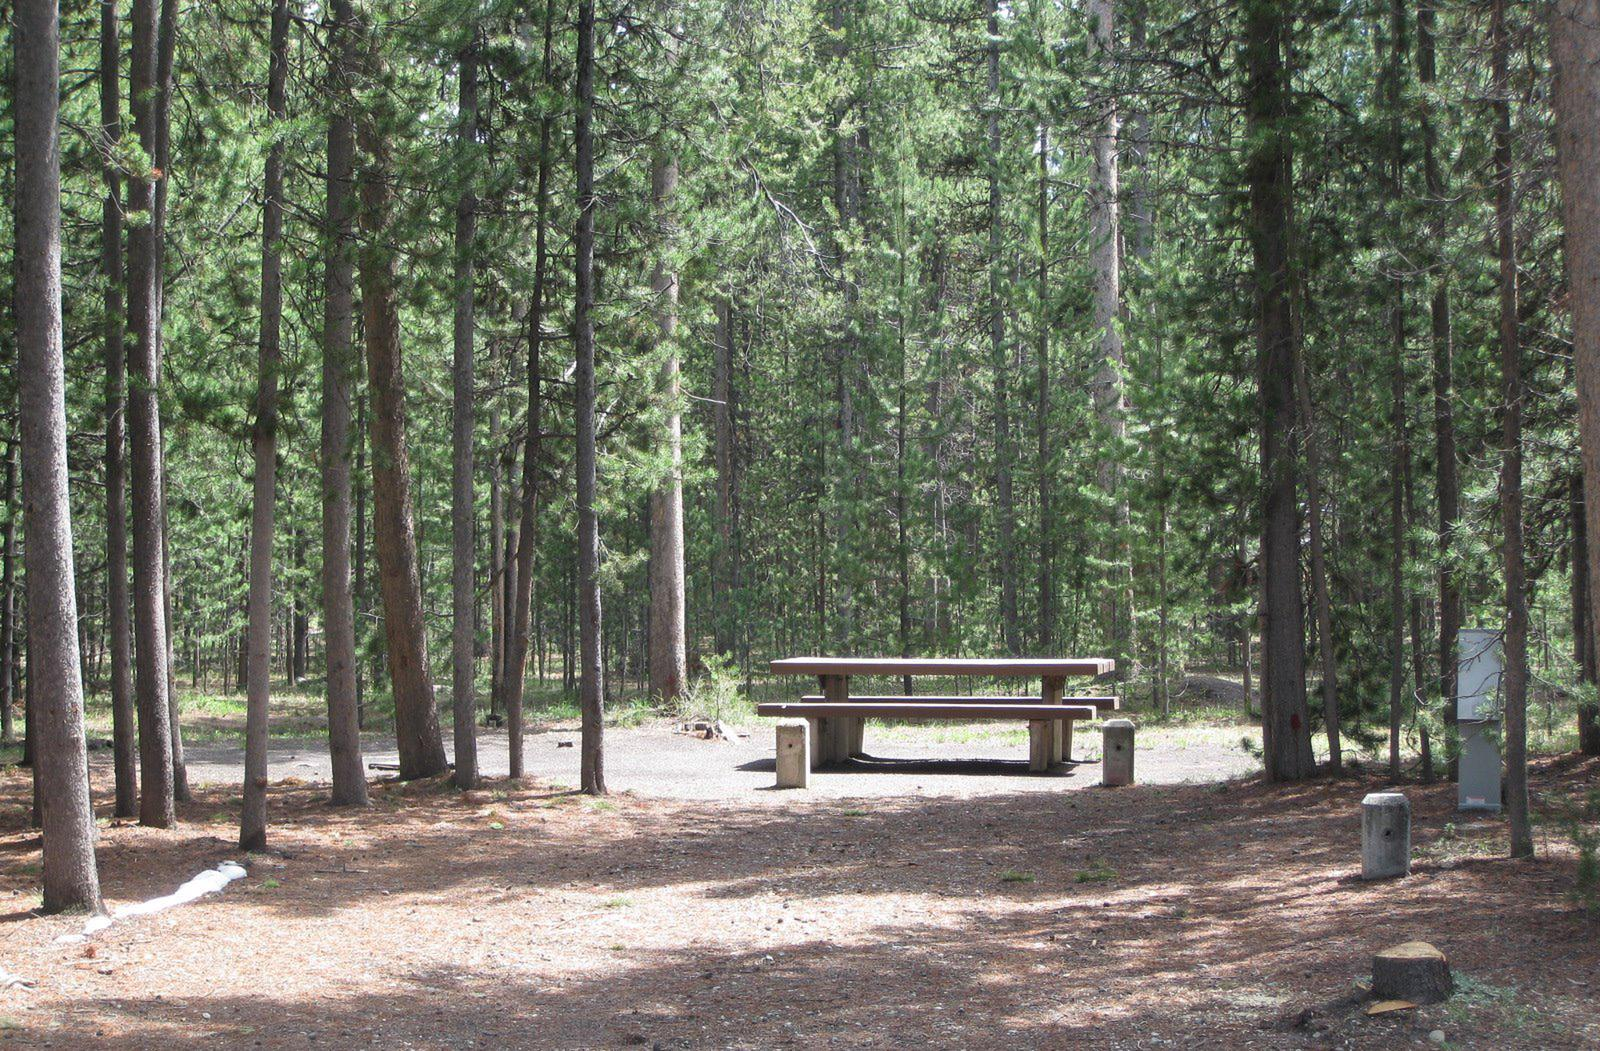 Site C23, surrounded by pine trees, picnic table & fire ringSite C23